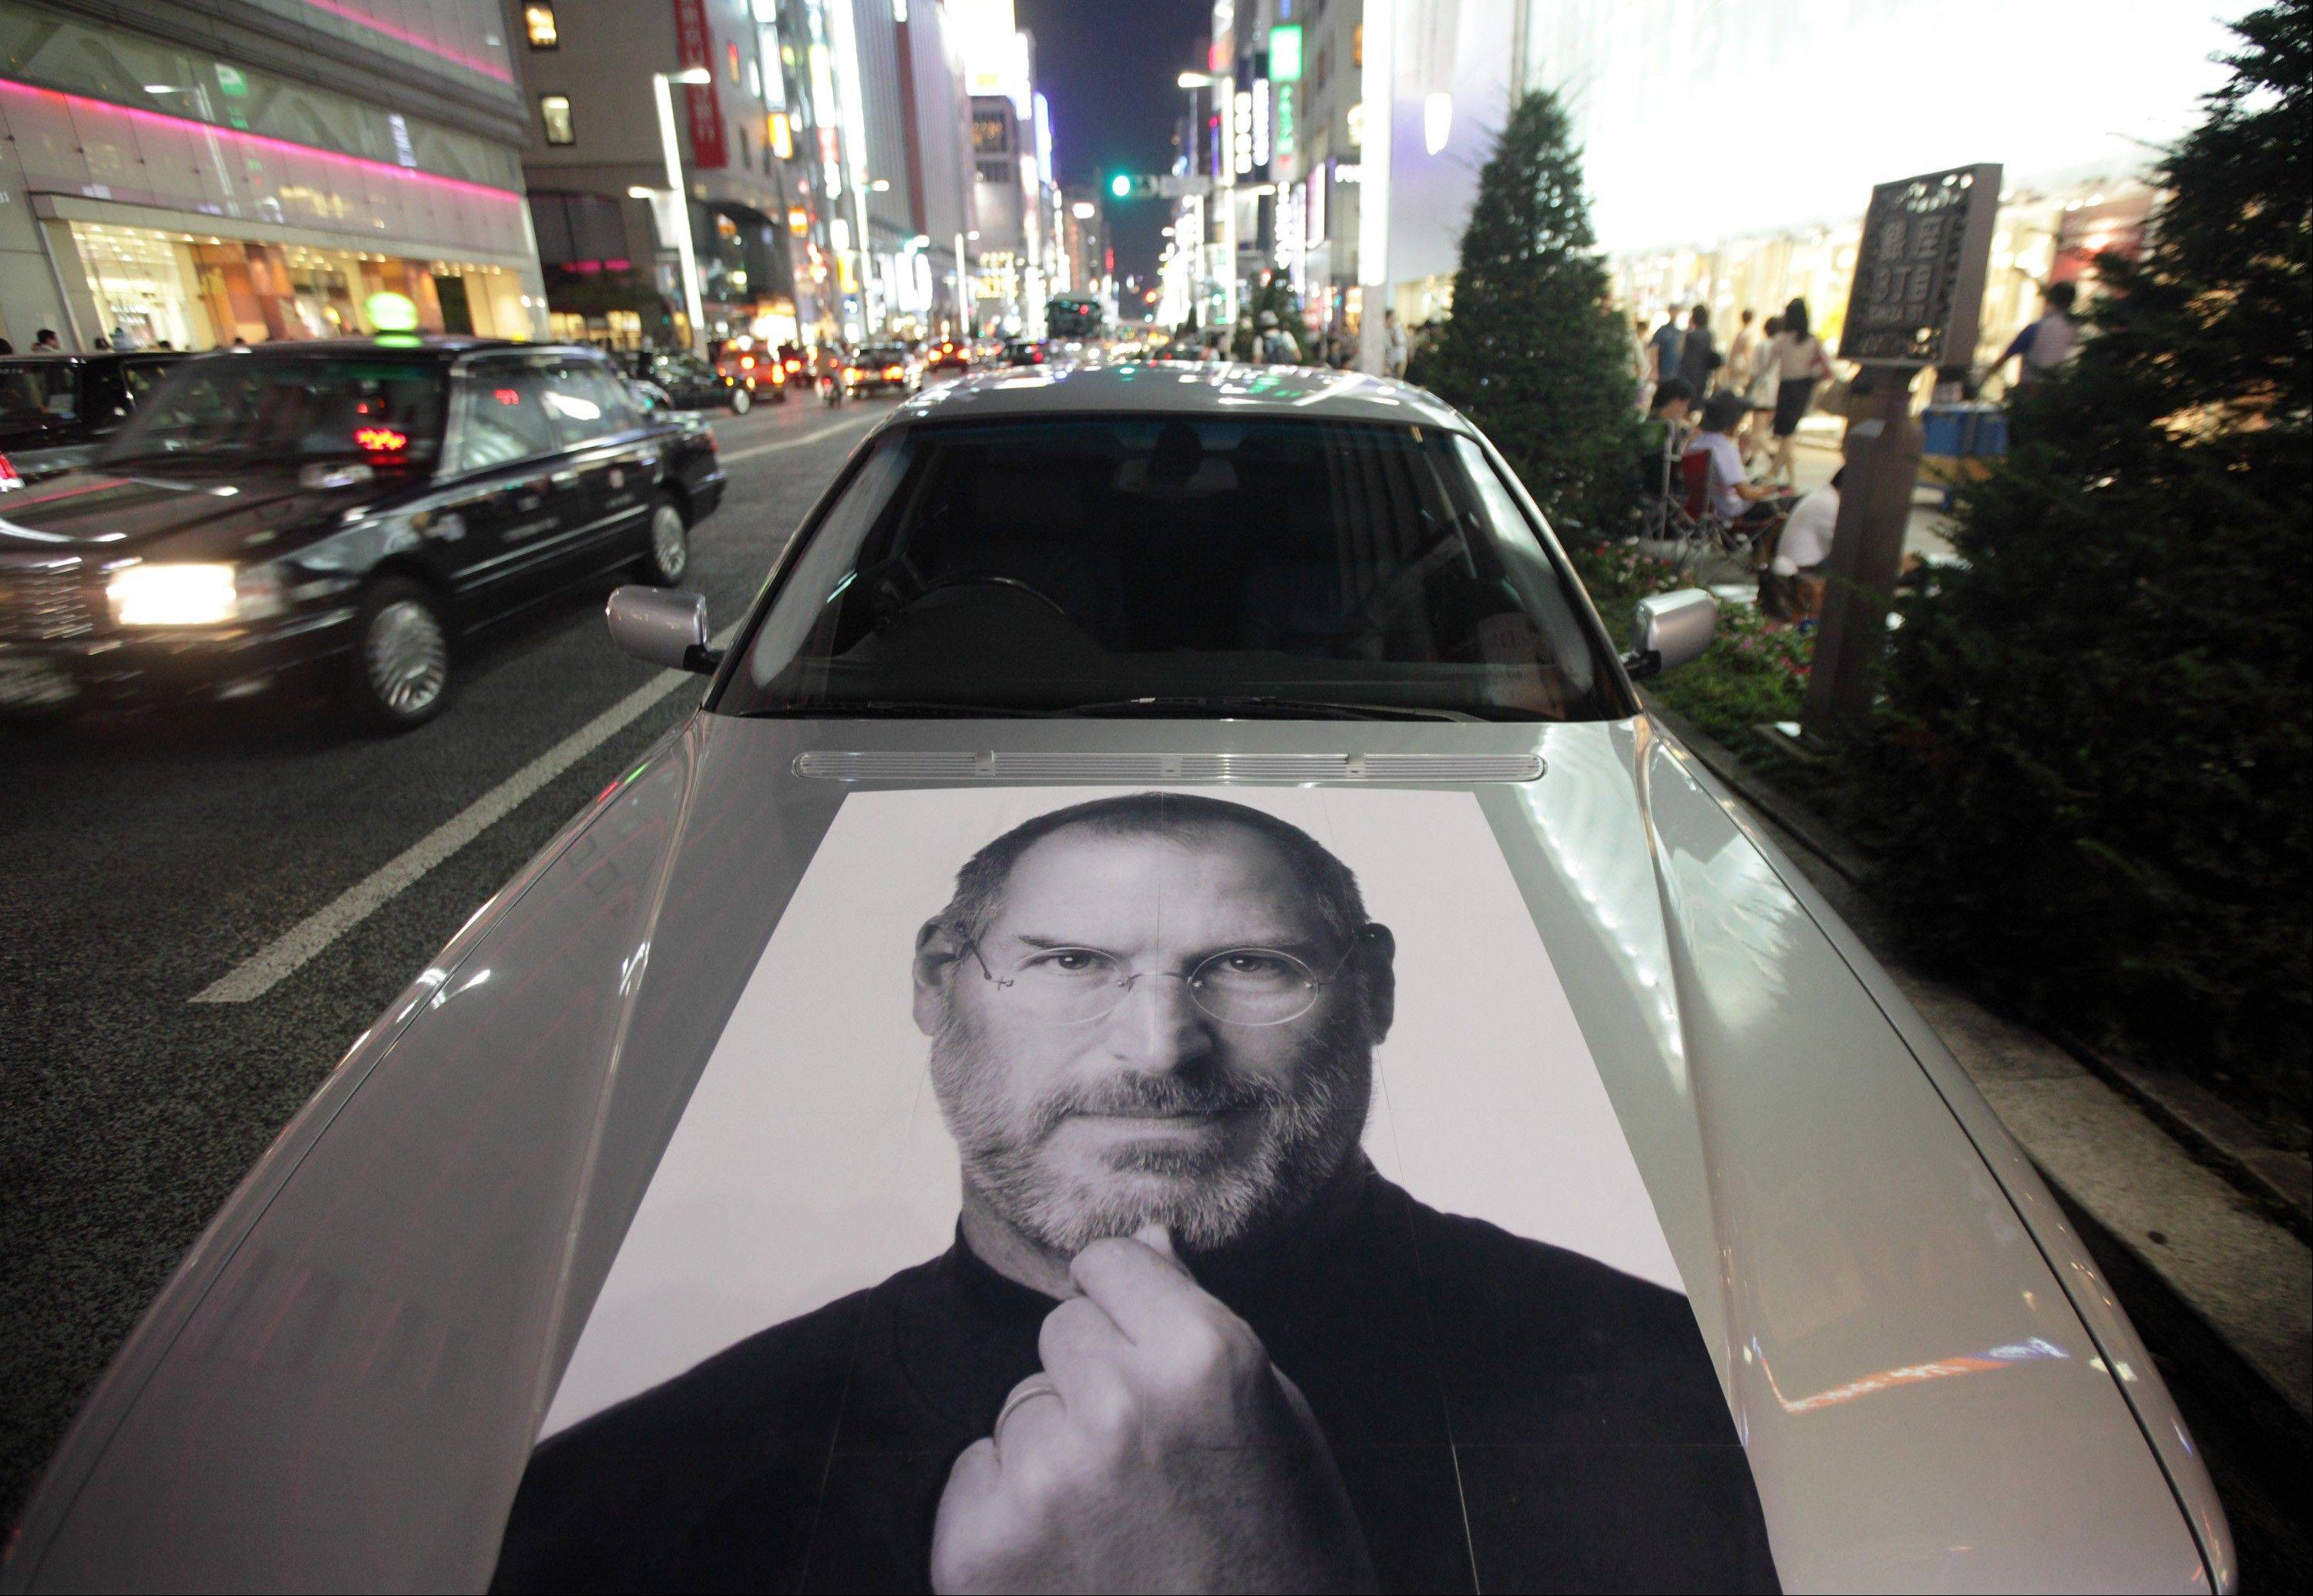 A car bearing a photograph of Steve Jobs, late chief executive officer of Apple Inc., is parked outside the Apple store at night in the Ginza district of Tokyo, Japan, on Thursday, Sept. 20, 2012. Apple's iPhone 5, which features a bigger screen, faster chip and a lighter body, sold 2 million units in first-day orders, more than double a record set by the previous model, Apple said.